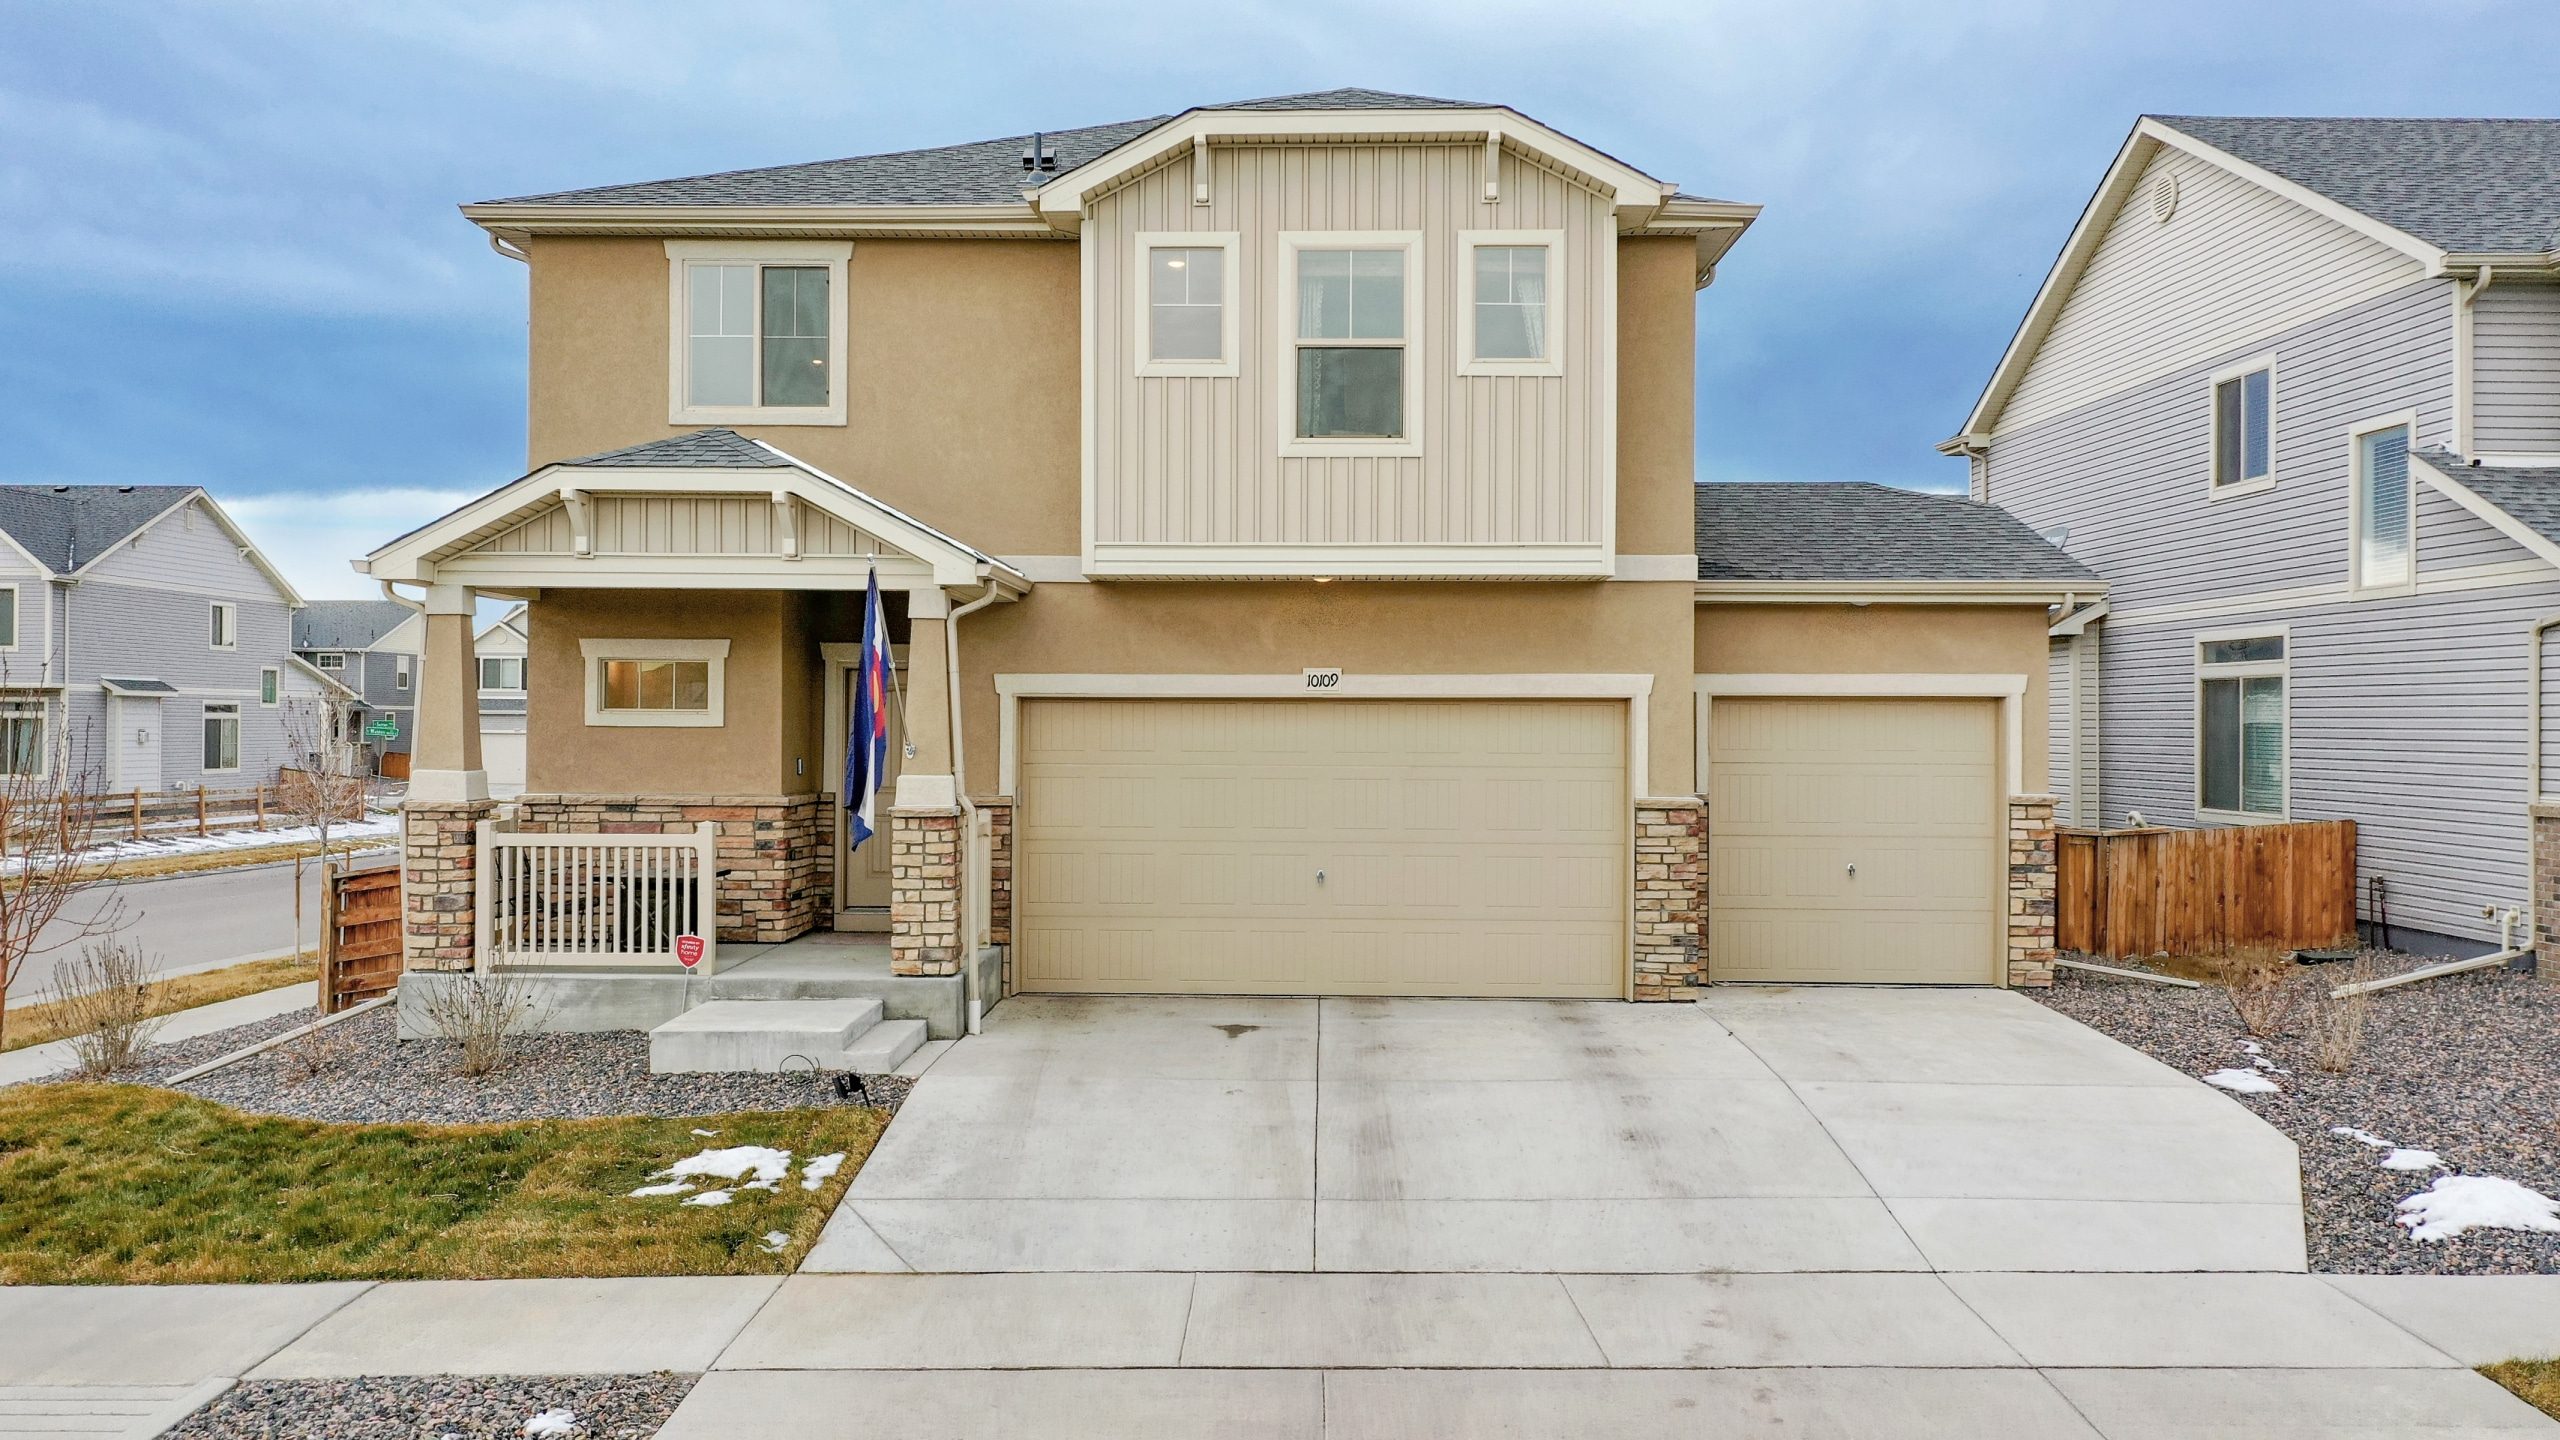 Commerce-City-CO-Home-for-Sale-New-Build-Beige-House